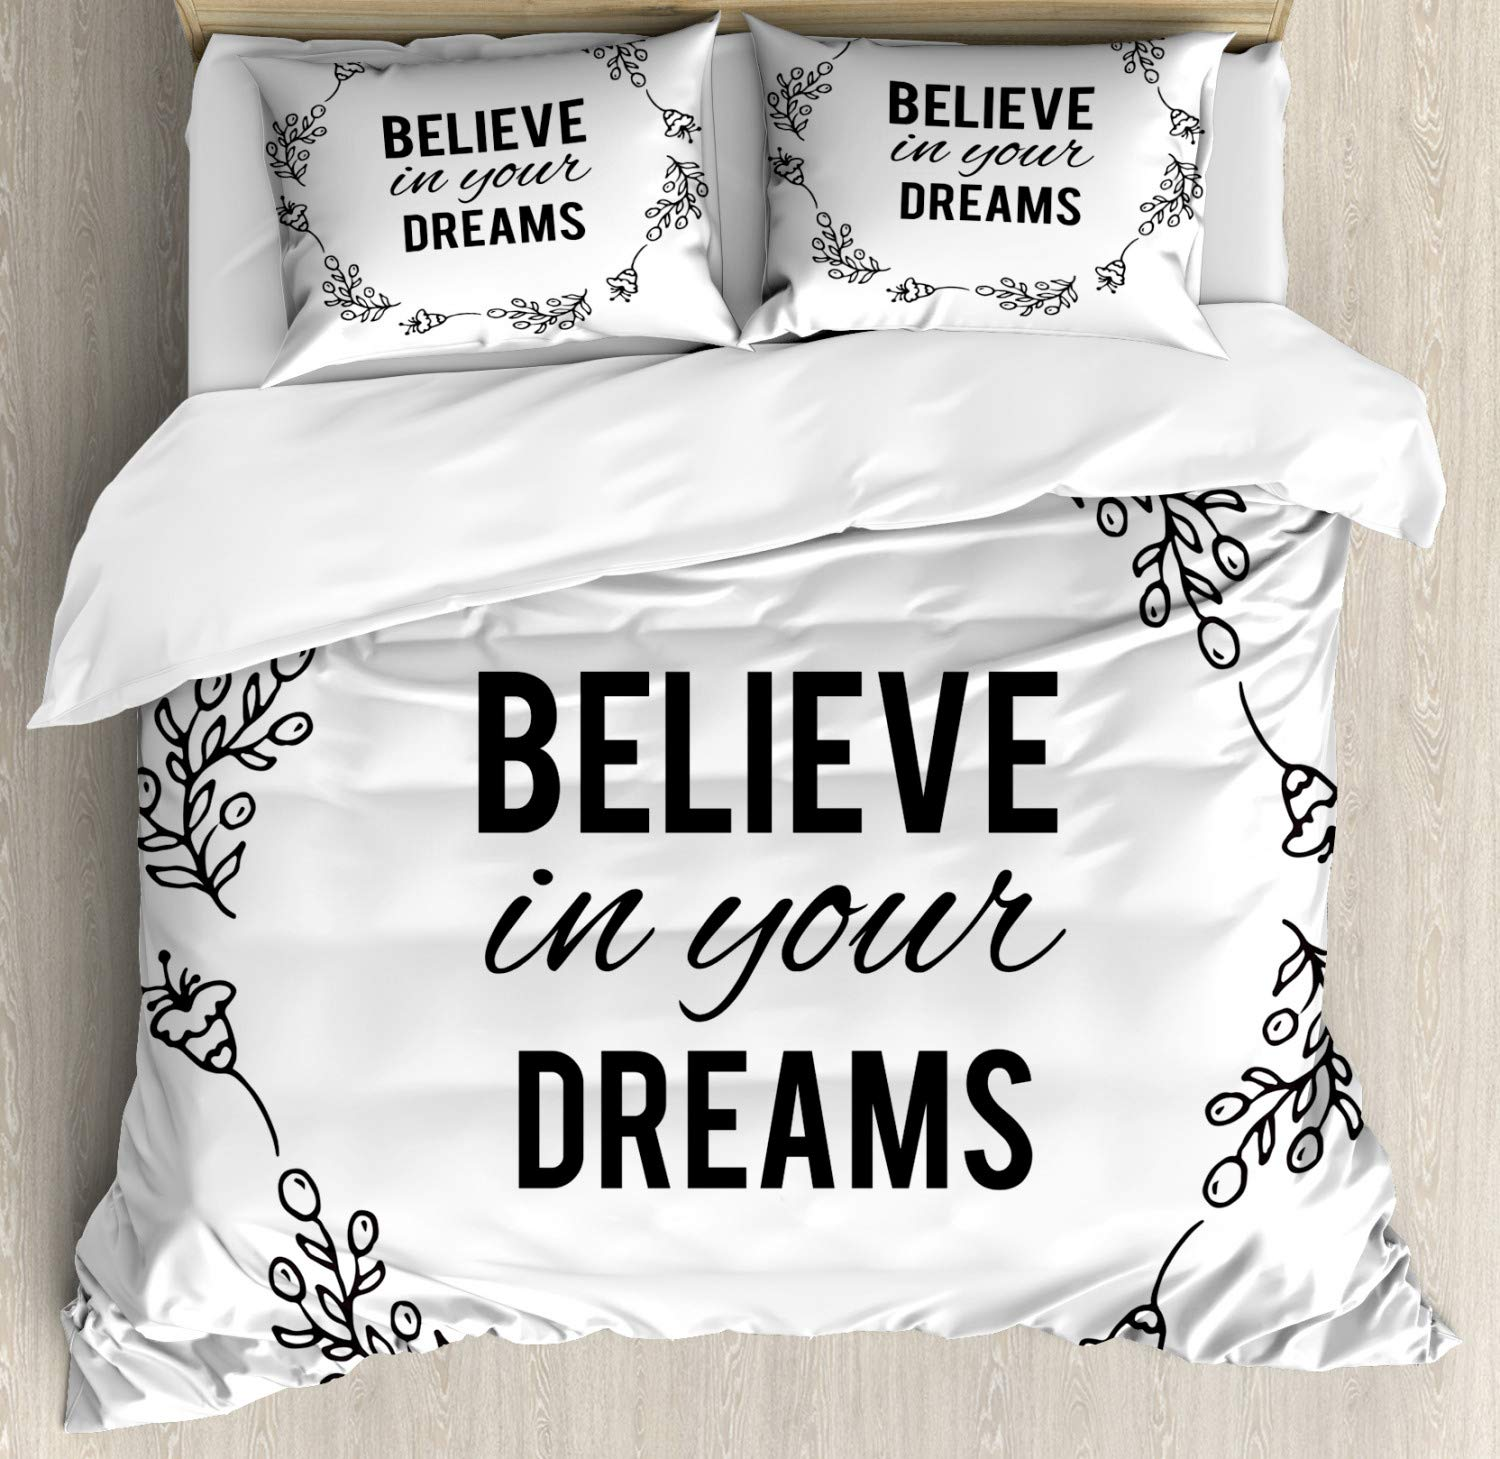 Ambesonne Dream Duvet Cover Set, Vintage Frame with Monochrome Believe in Your Dreams Words Hand Drawn Laurel, Decorative 3 Piece Bedding Set with 2 Pillow Shams, King Size, White Black